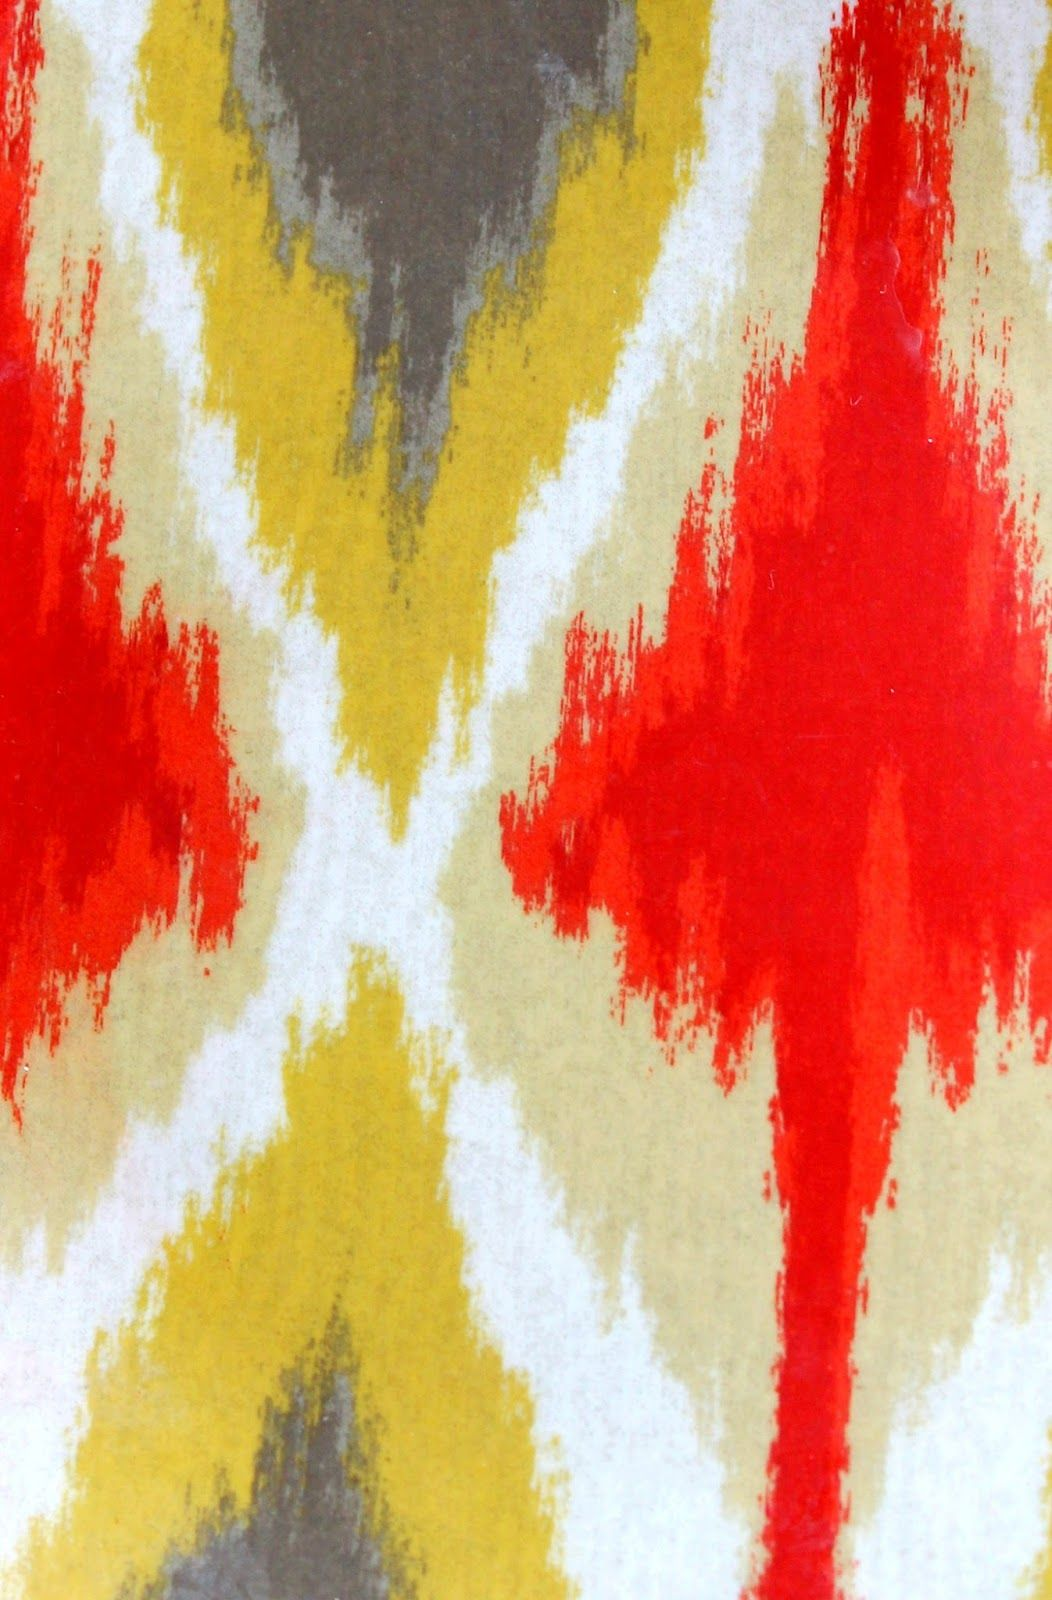 DIY Ikat Canvas Tutorial | Canvases, Tutorials and Paintings